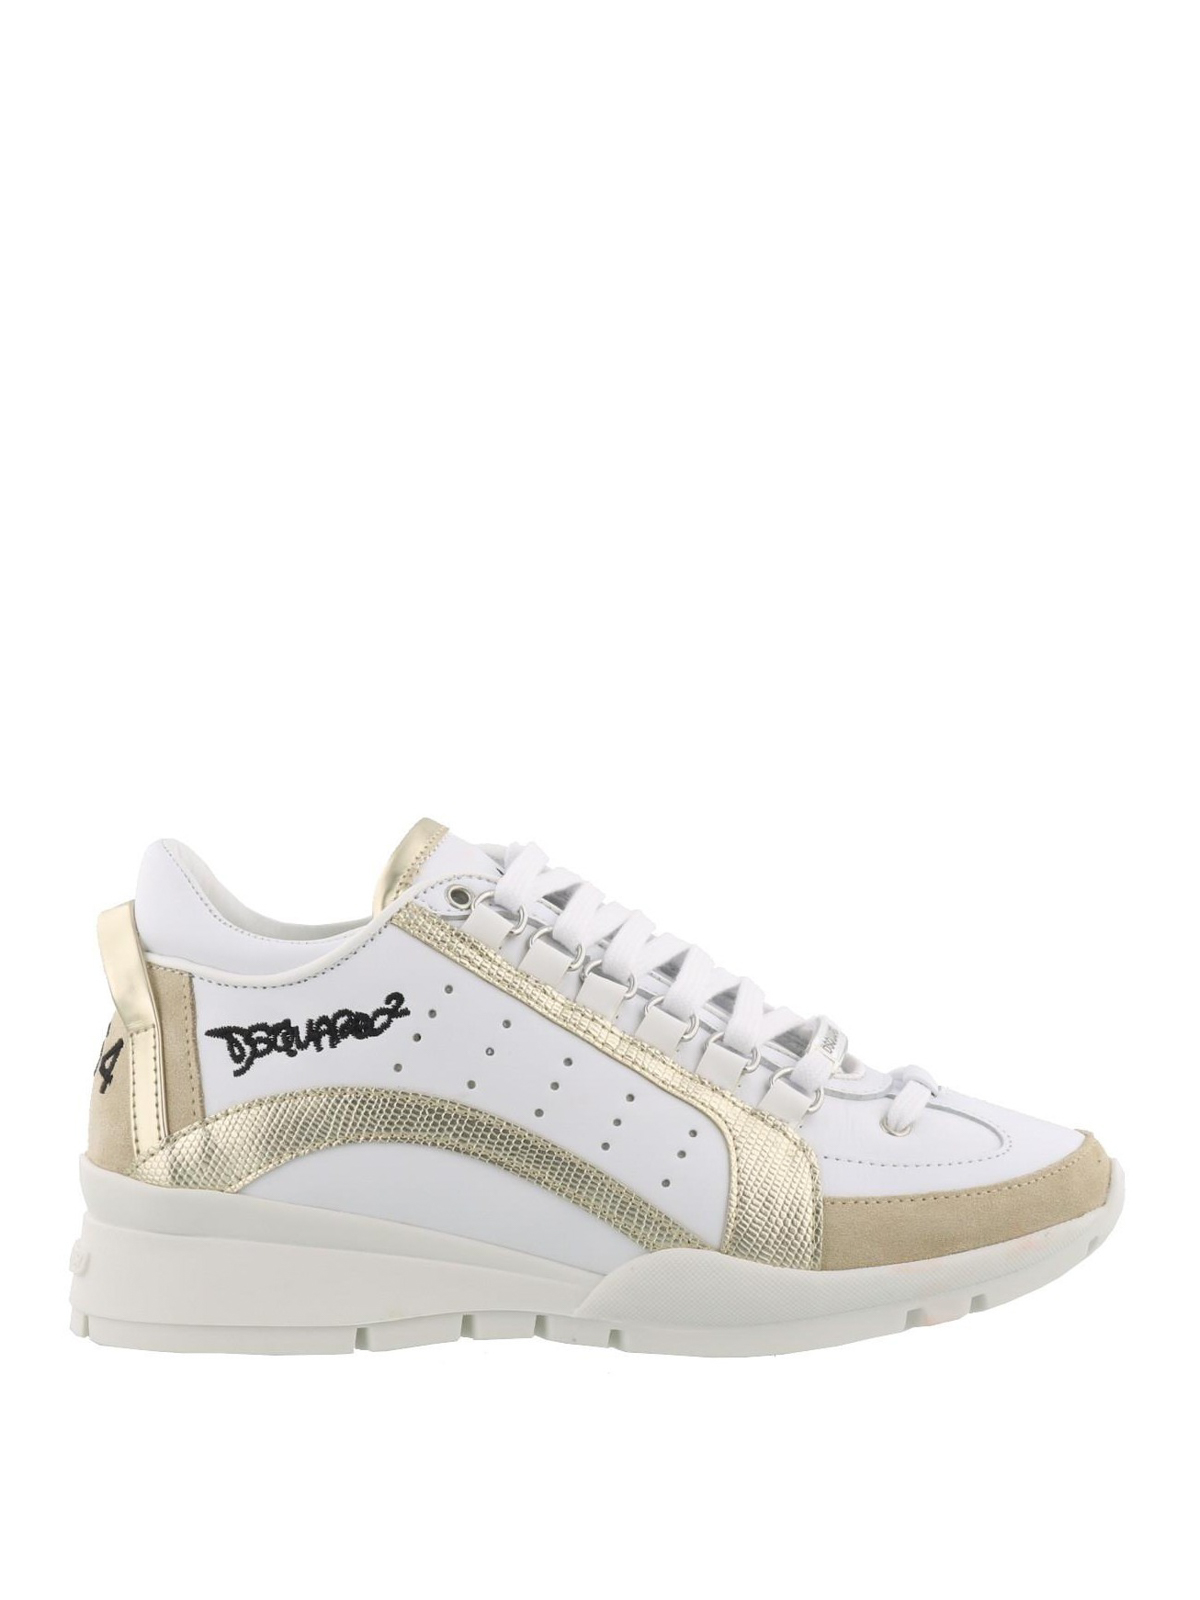 Gold detail 551 leather sneakers